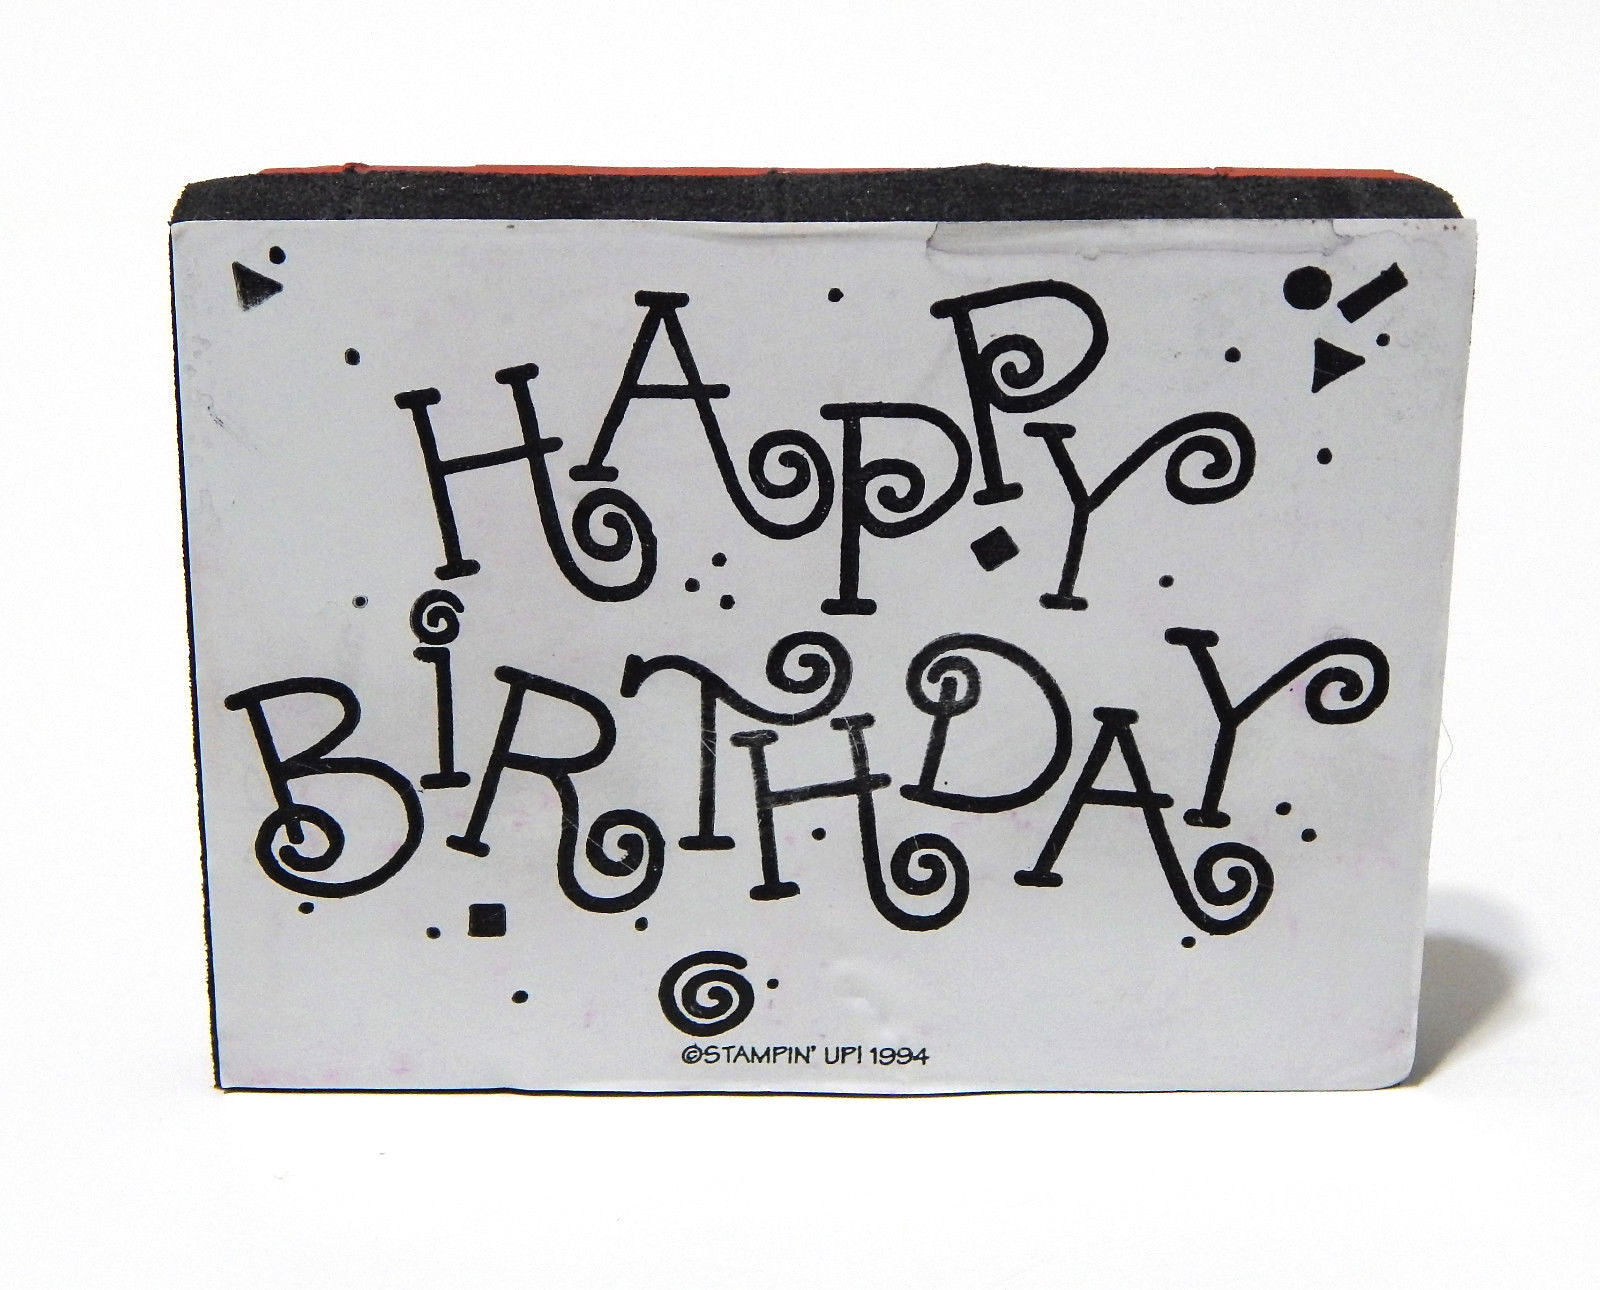 Stampin Up Happy Birthday Rubber Stamp LG Horizontal Foam Mounted 1994 Retired - $5.00